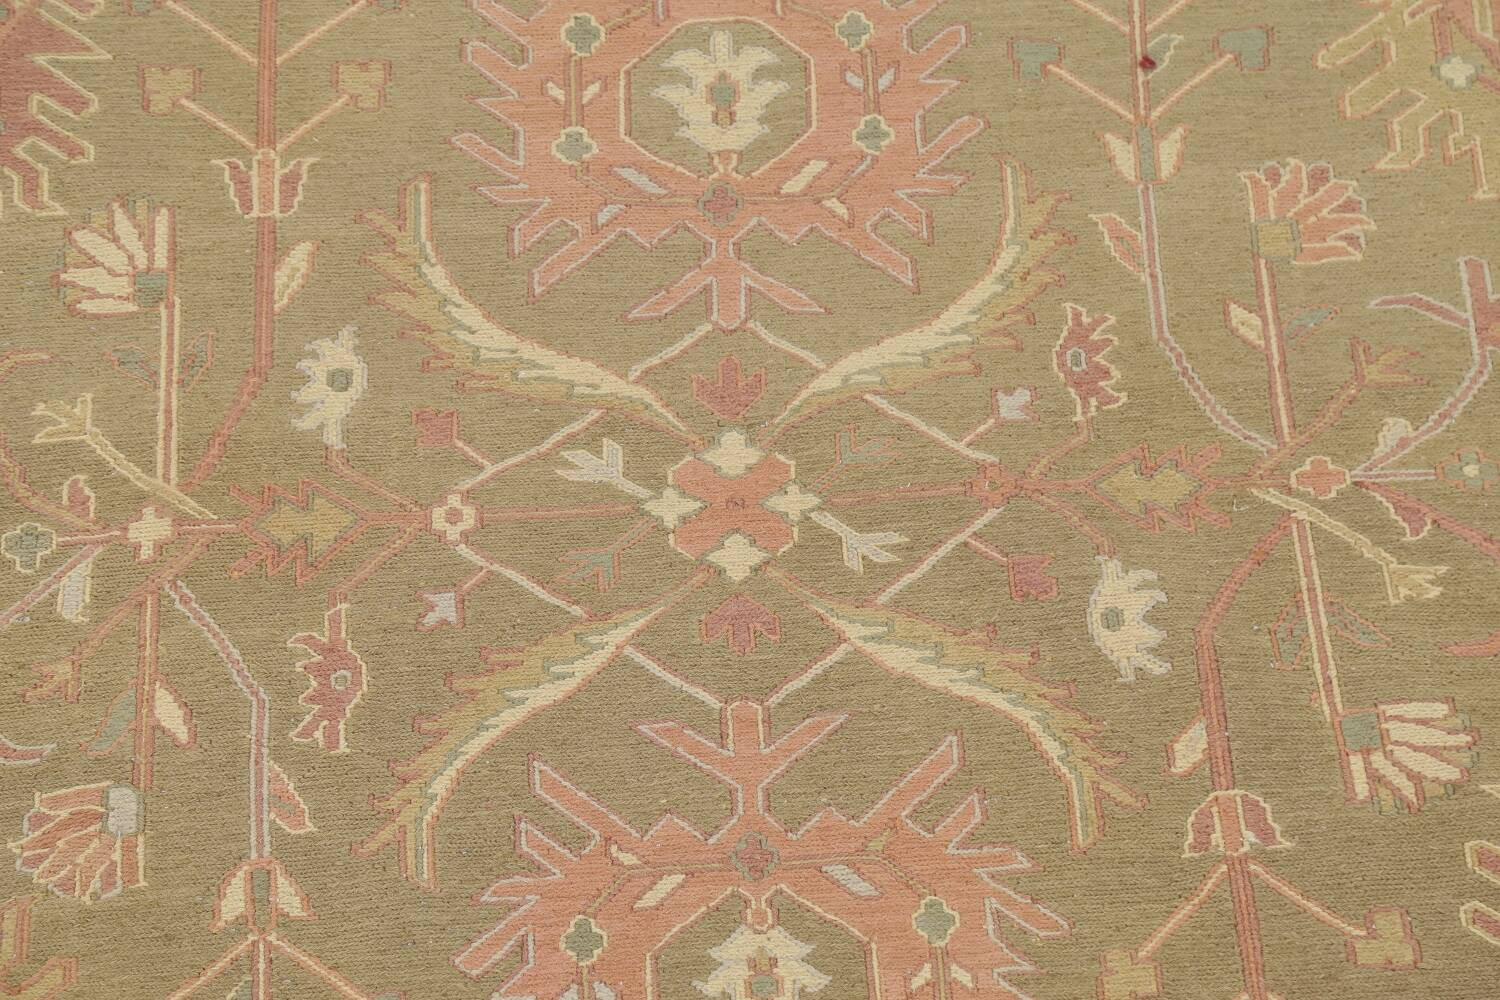 All-Over Green Floral Sumak Oriental Area Rug 8x8 Roud image 4